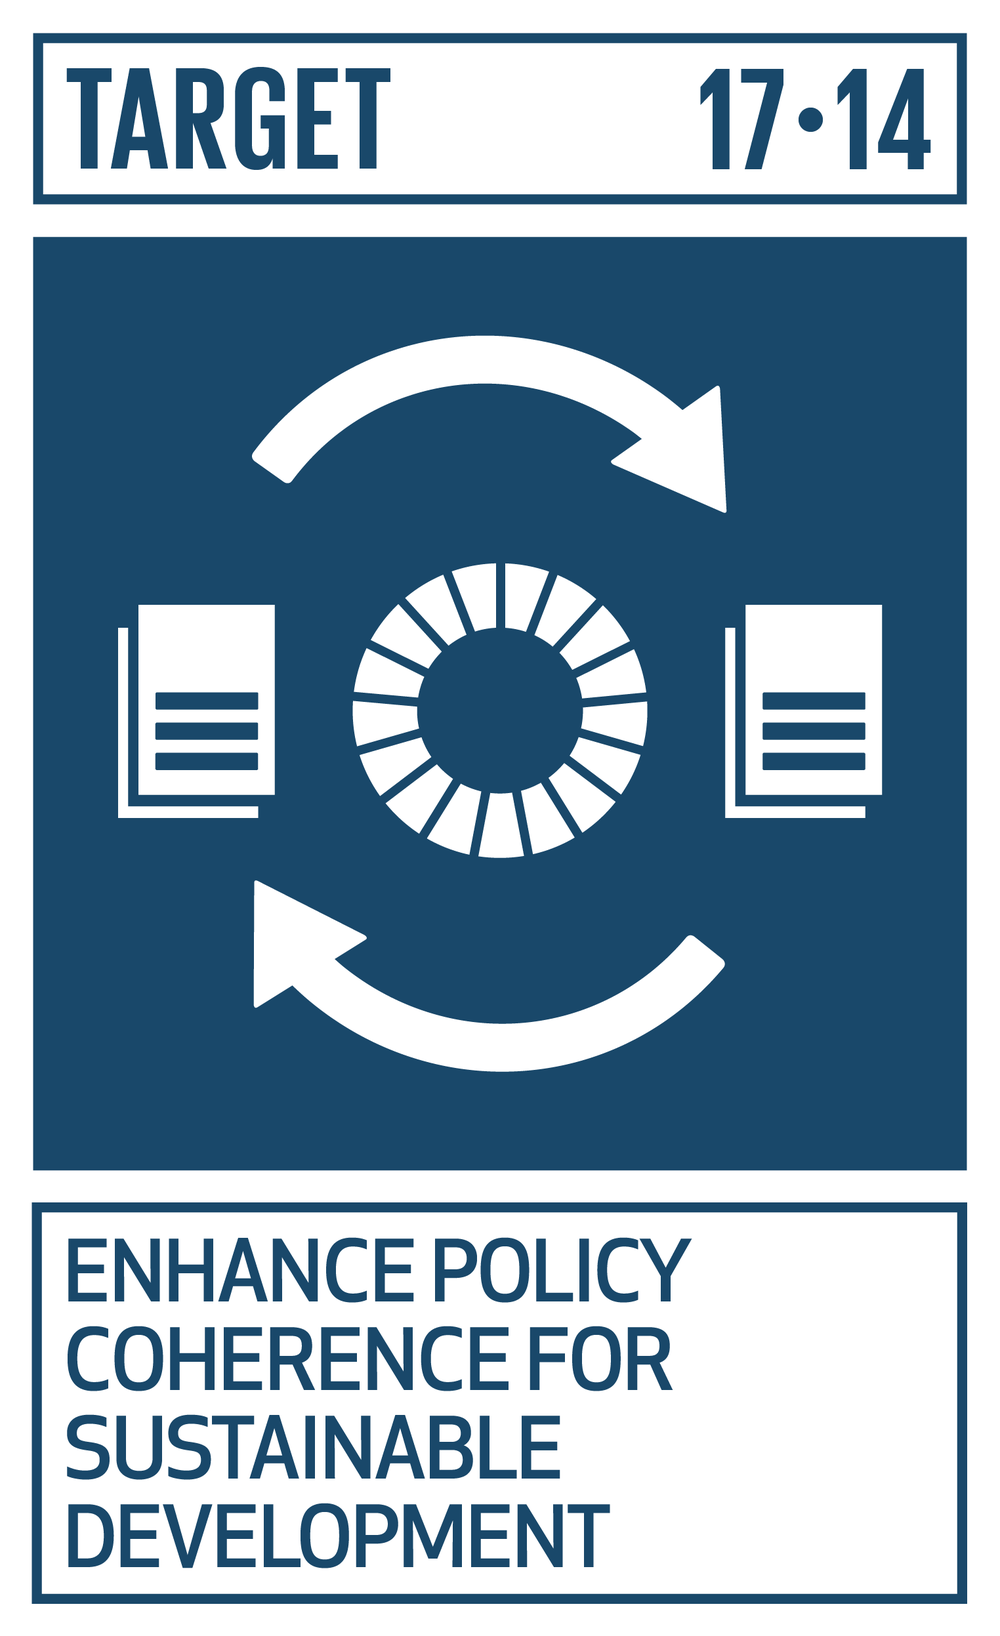 SYSTEMIC ISSUES - POLICY AND INSTITUTIONAL COHERENCE   Enhance policy coherence for sustainable development   INDICATOR    17.14.1  Number of countries with mechanisms in place to enhance policy coherence of sustainable development